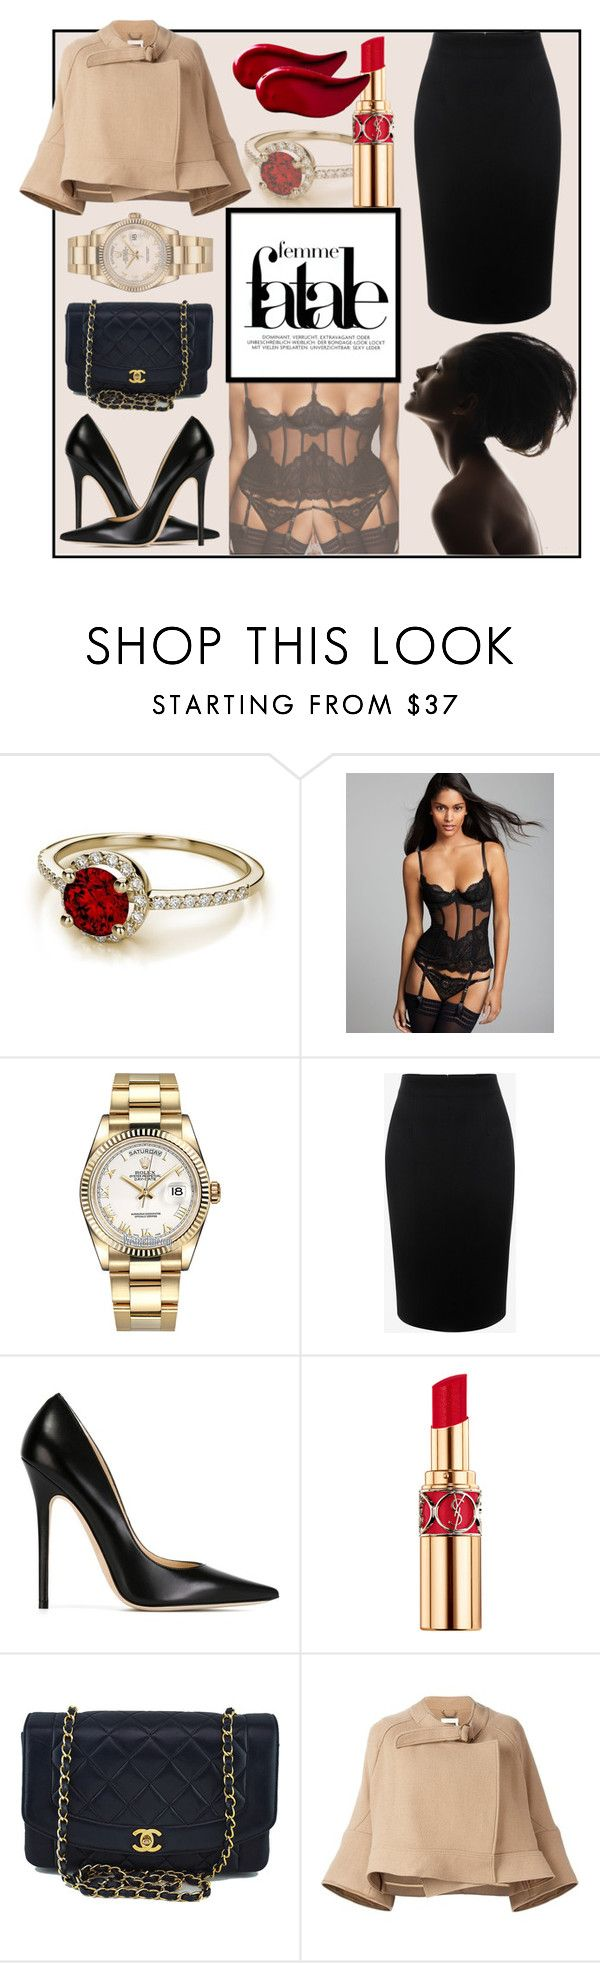 """Femme Fatale"" by slavulienka on Polyvore featuring L'Agent By Agent Provocateur, Rolex, Alexander McQueen, Jimmy Choo, Yves Saint Laurent, Chanel, Chloé and Kat Von D"